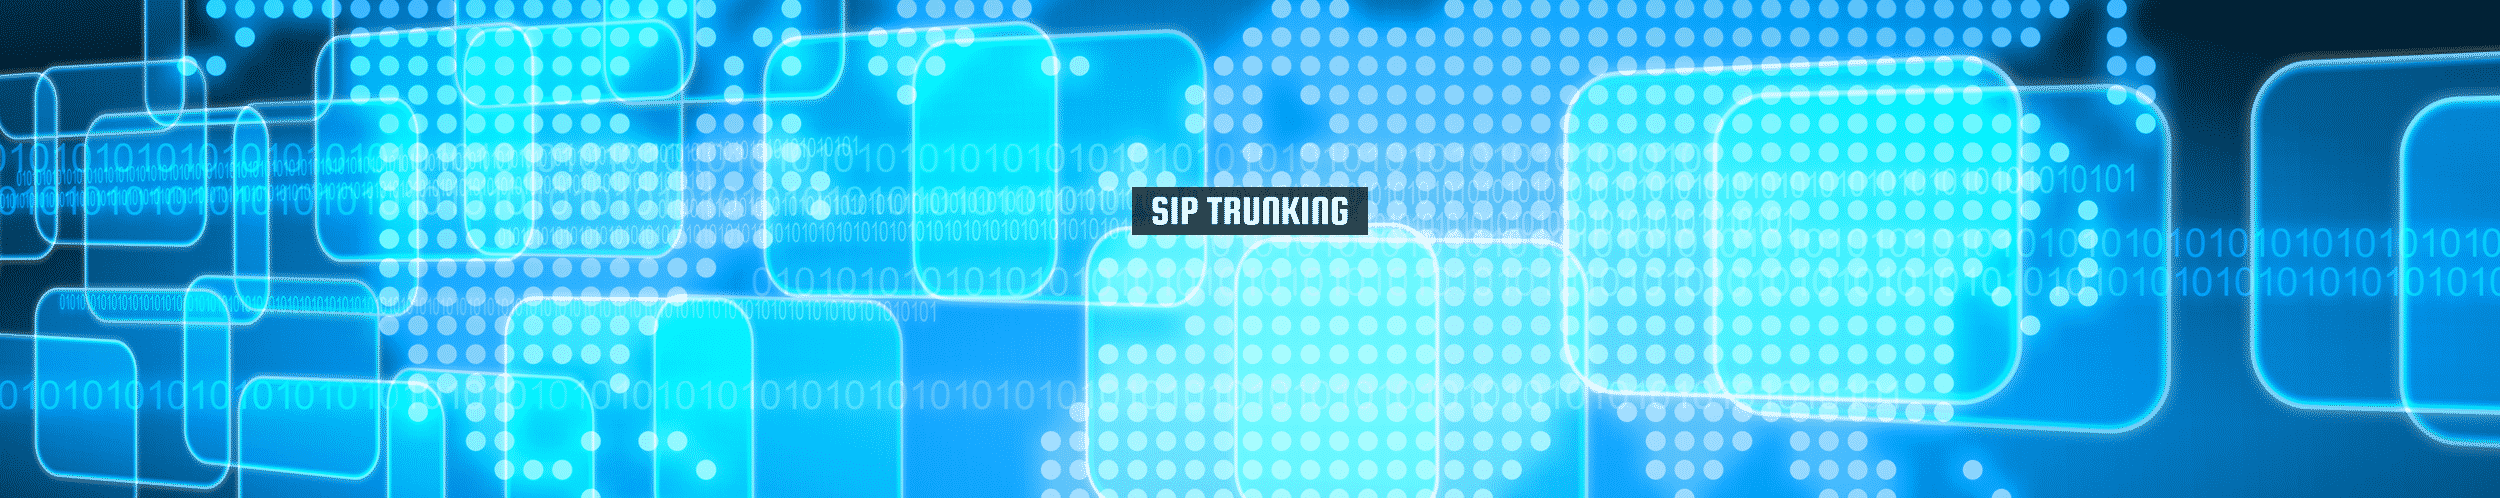 52Degrees SIP Trunking - Fonktiounscanner | bluëch Tech wéi Background mat Kodéierung Telecoms Solutions, Norwich